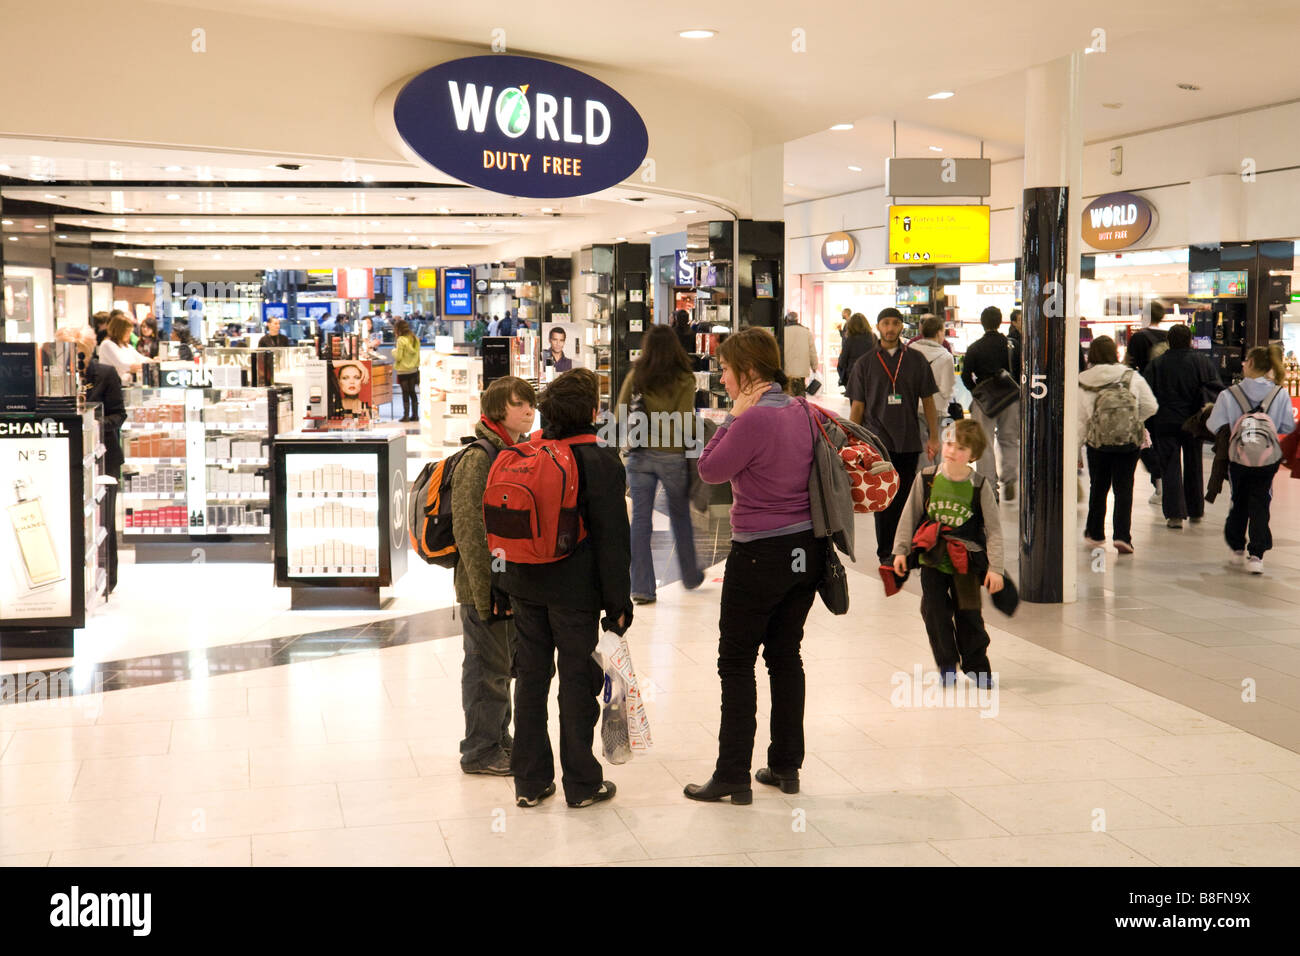 Shoppers at the World Duty Free shop, Departure lounge, Terminal 1, Heathrow airport, London - Stock Image